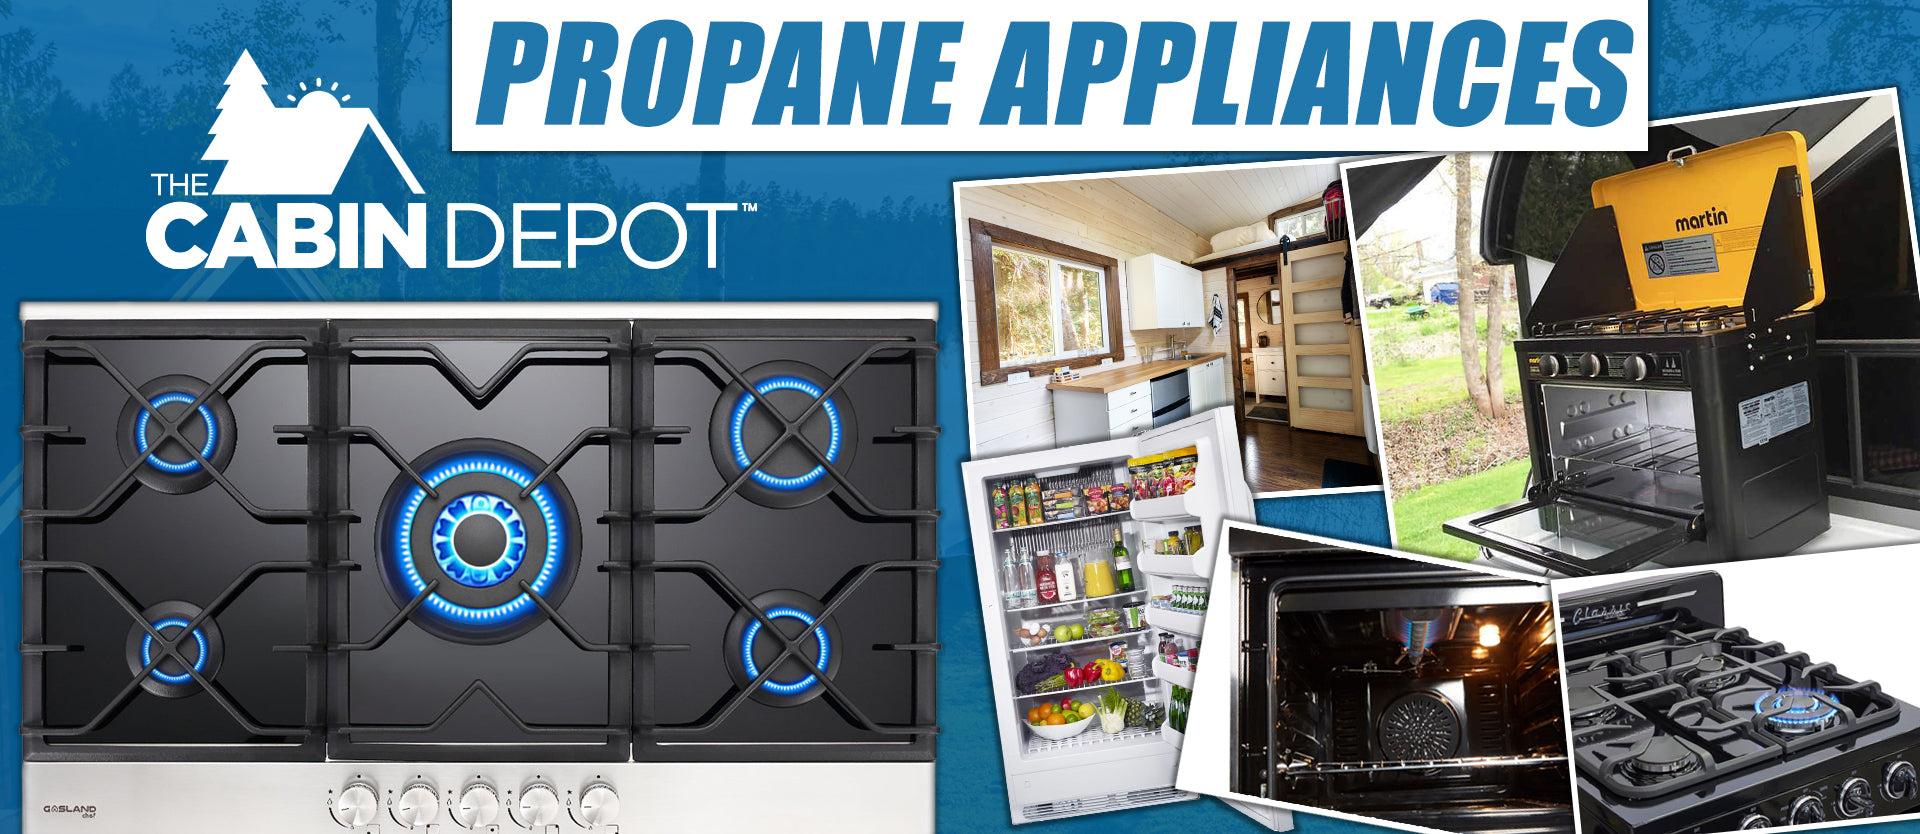 Propane Off-Grid Canada Appliances The Cabin Depot™ 1-844-603-4743